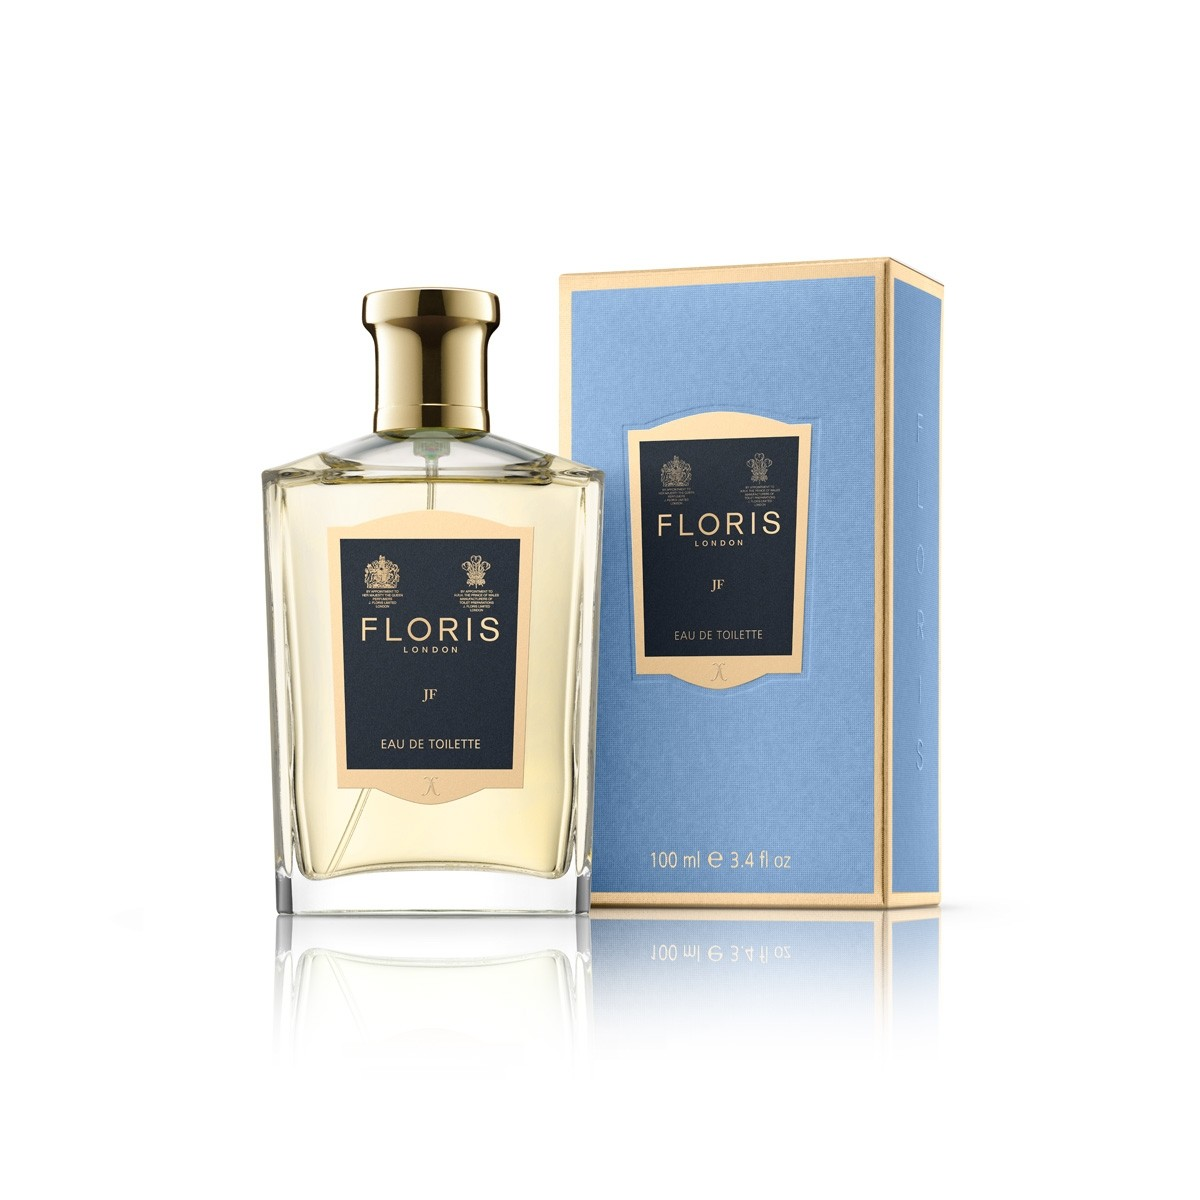 Floris JF Eau de Toilette 100 ml